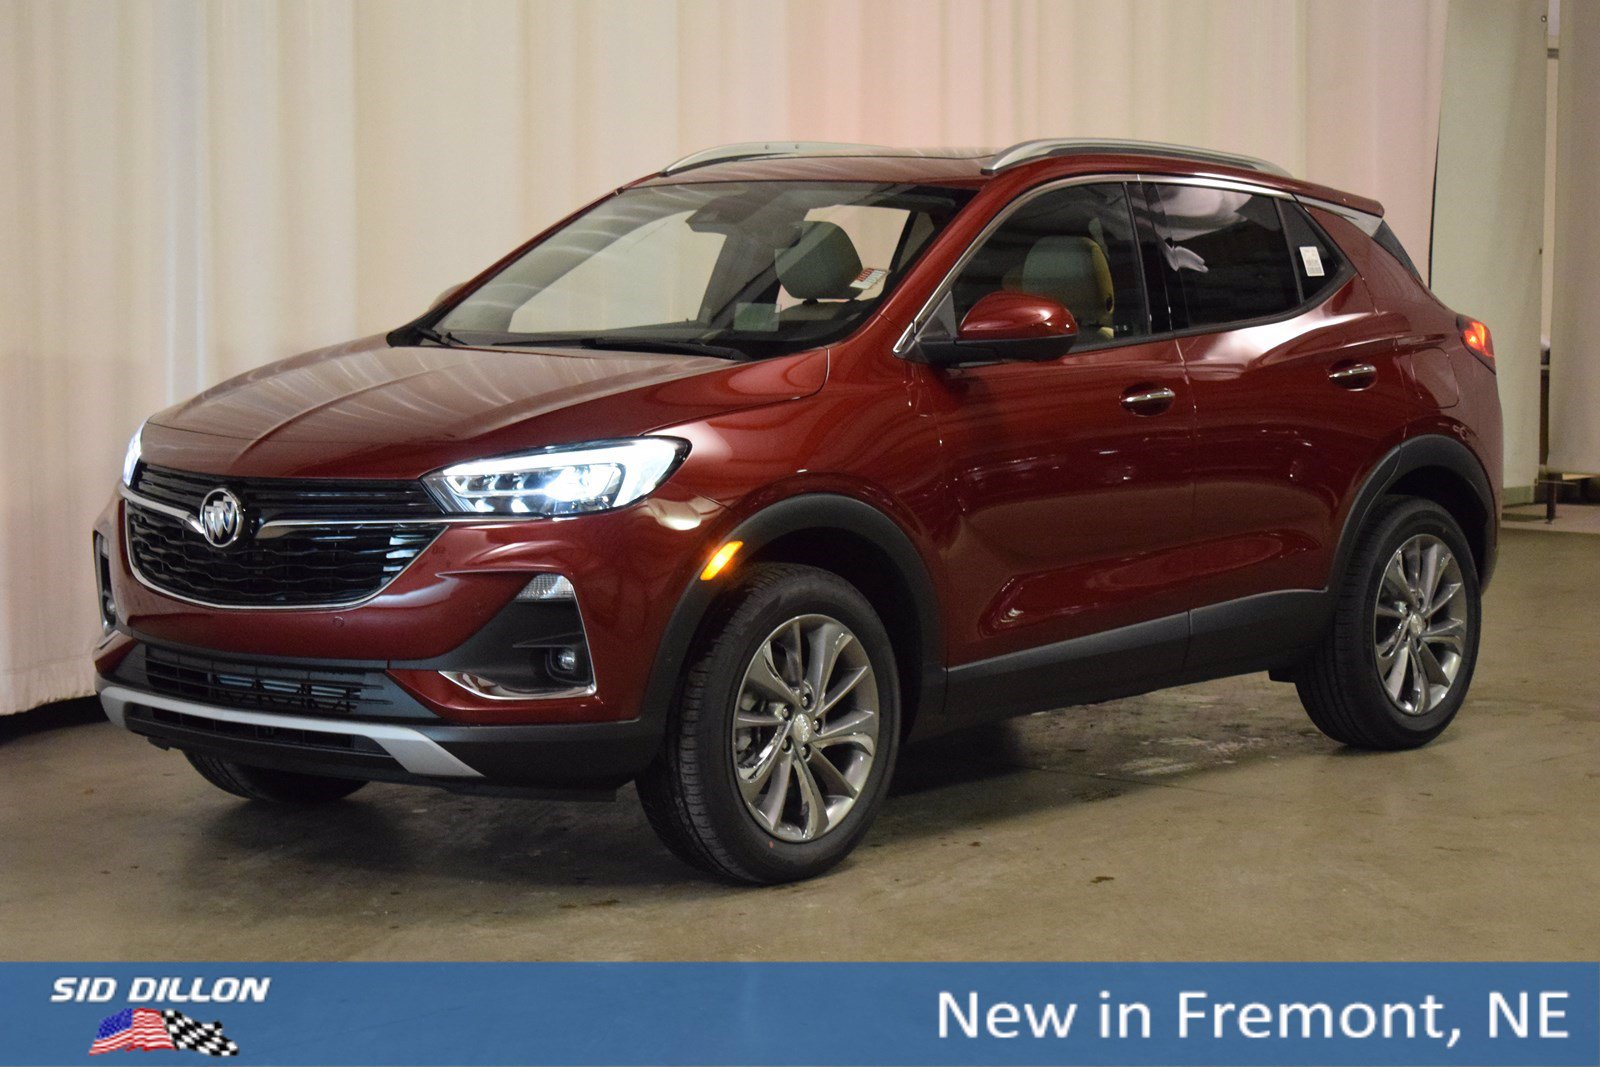 New 2020 Buick Encore Gx Essence Awd New 2021 Buick Encore Gx Specs, Accessories, Awd